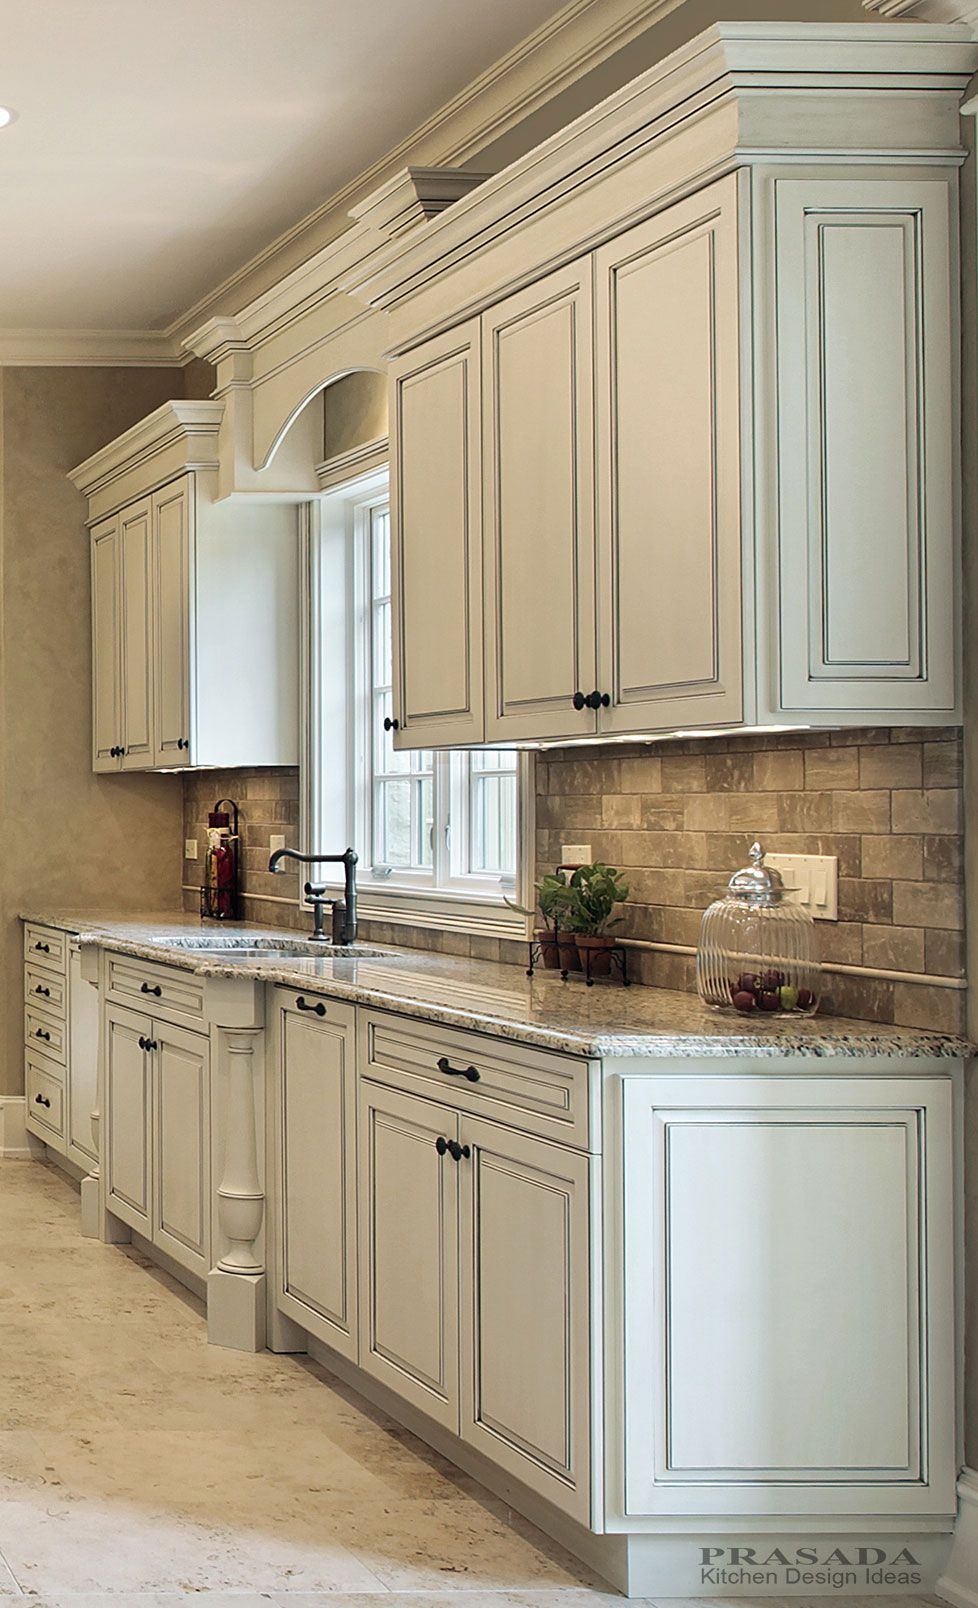 Cabinetcounter and backsplash color home in pinterest